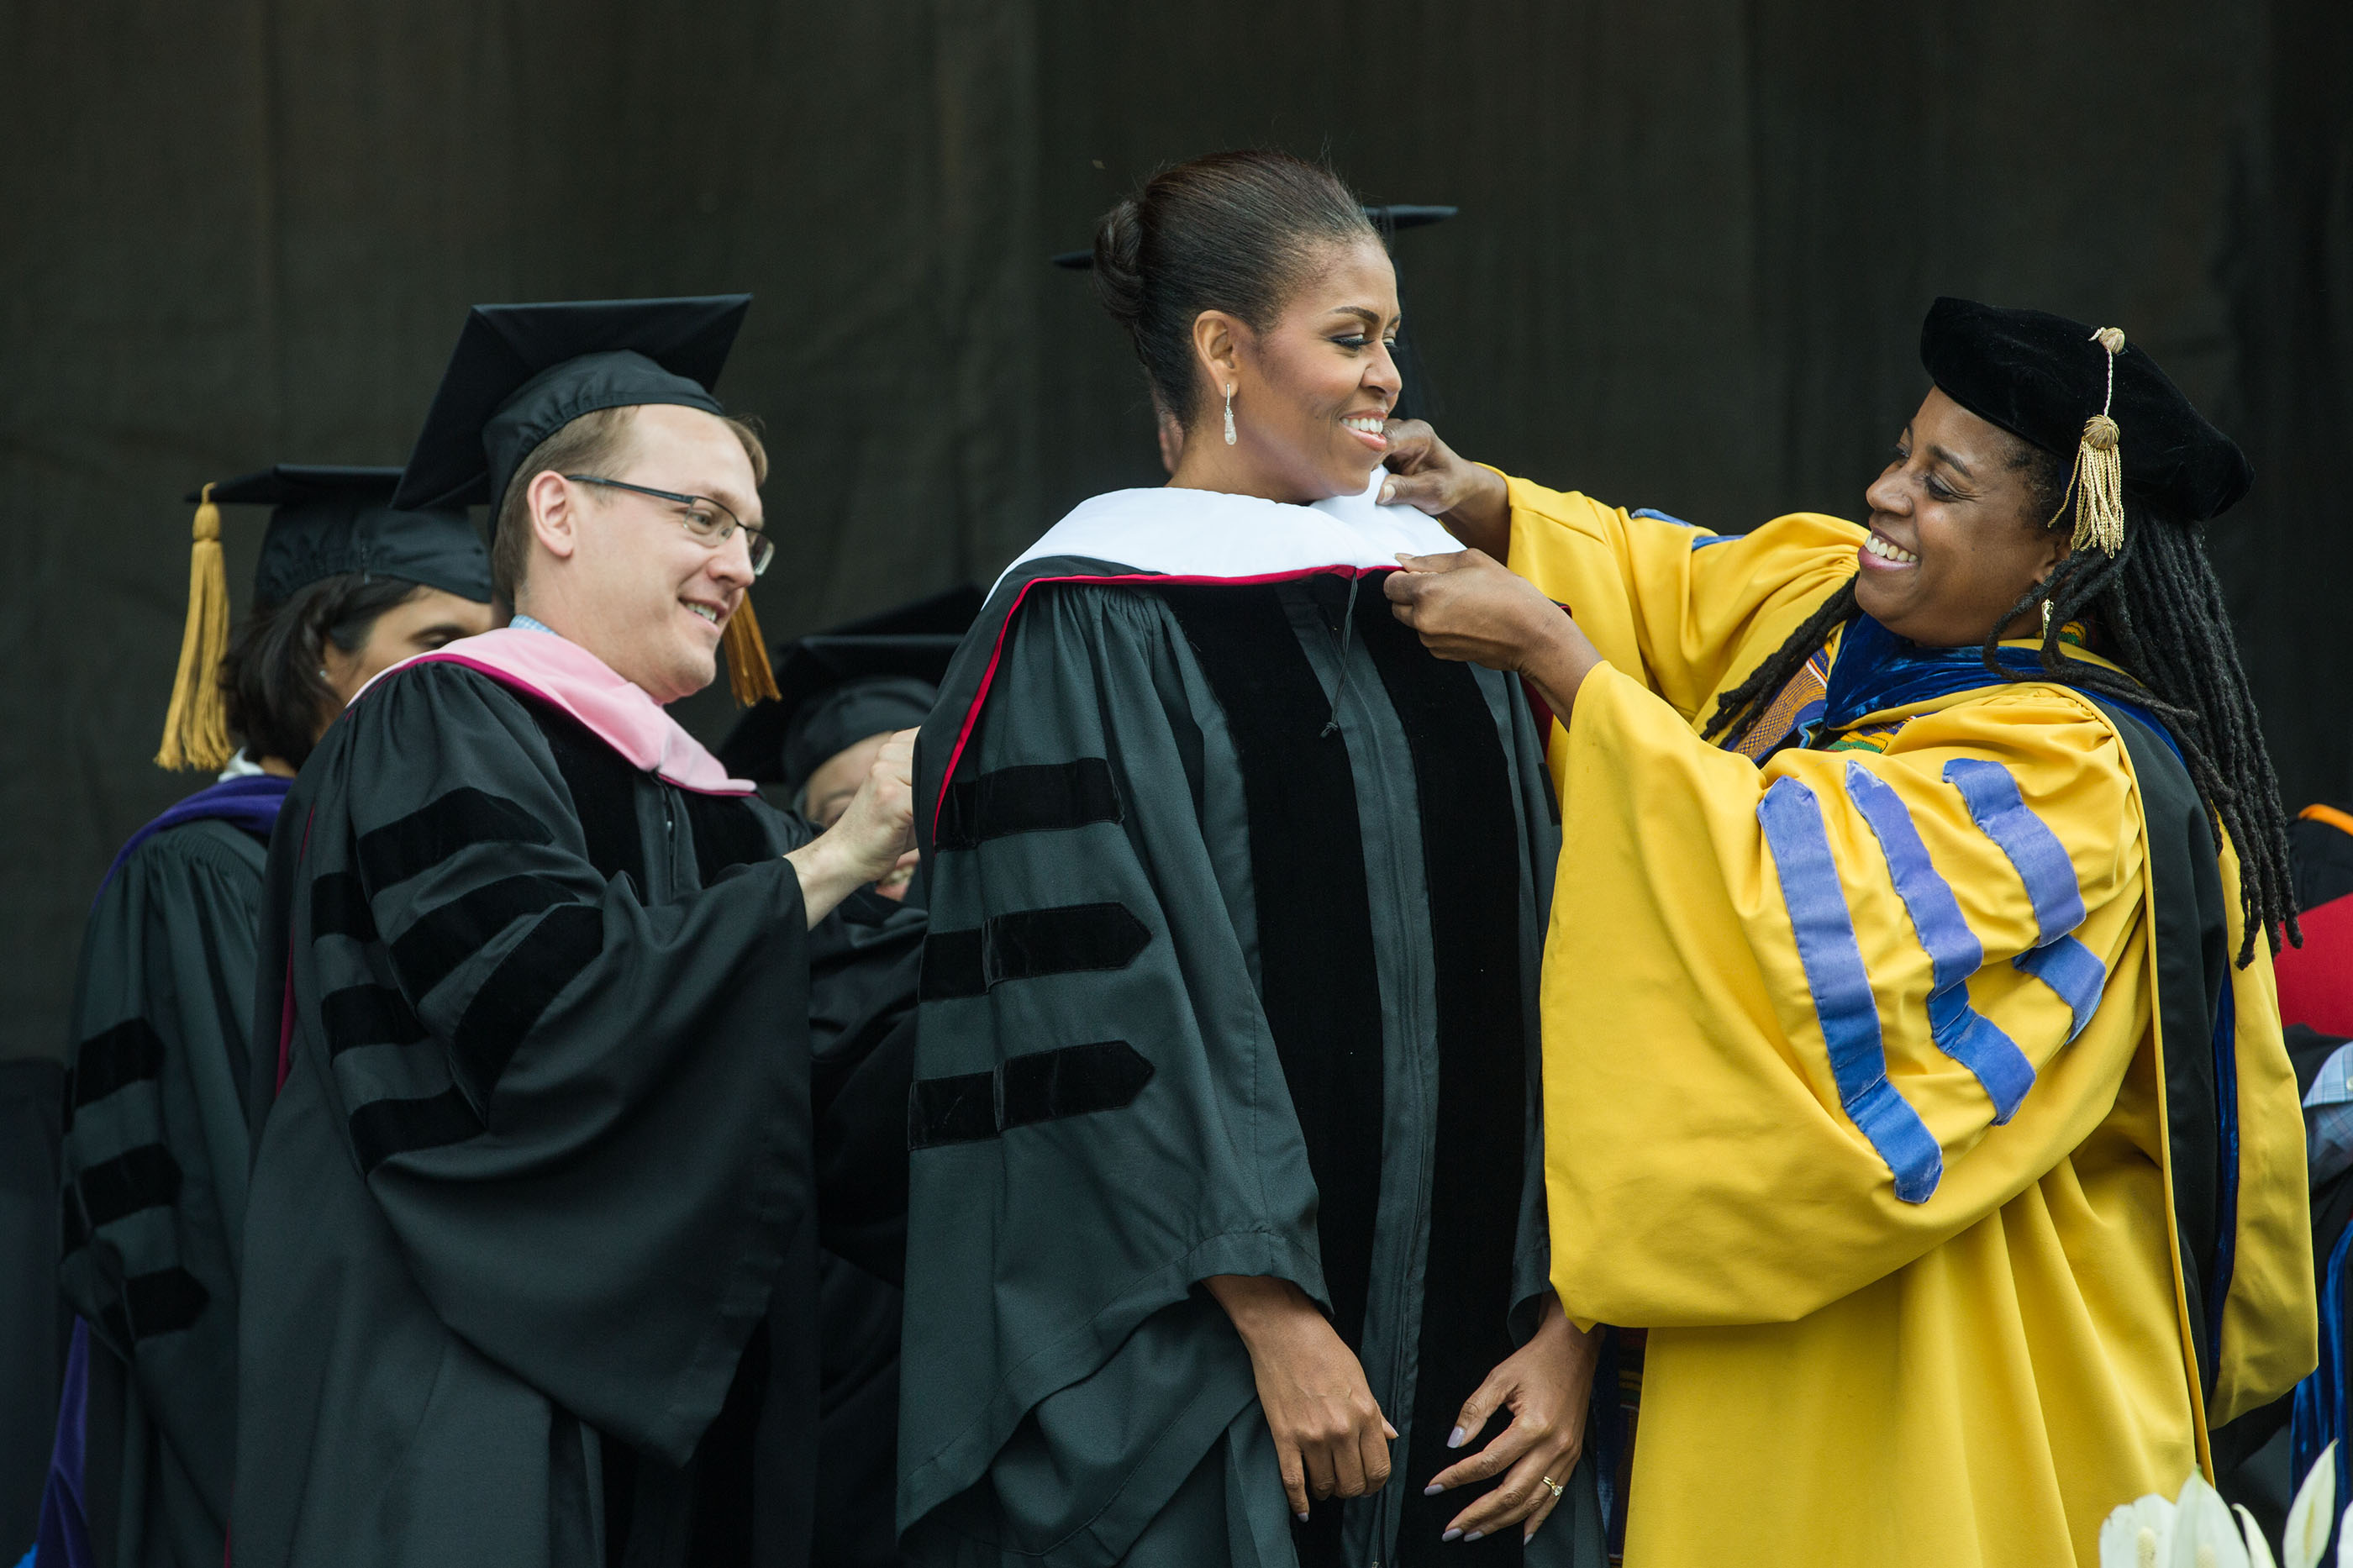 First Lady Michelle Obama at Oberlin College